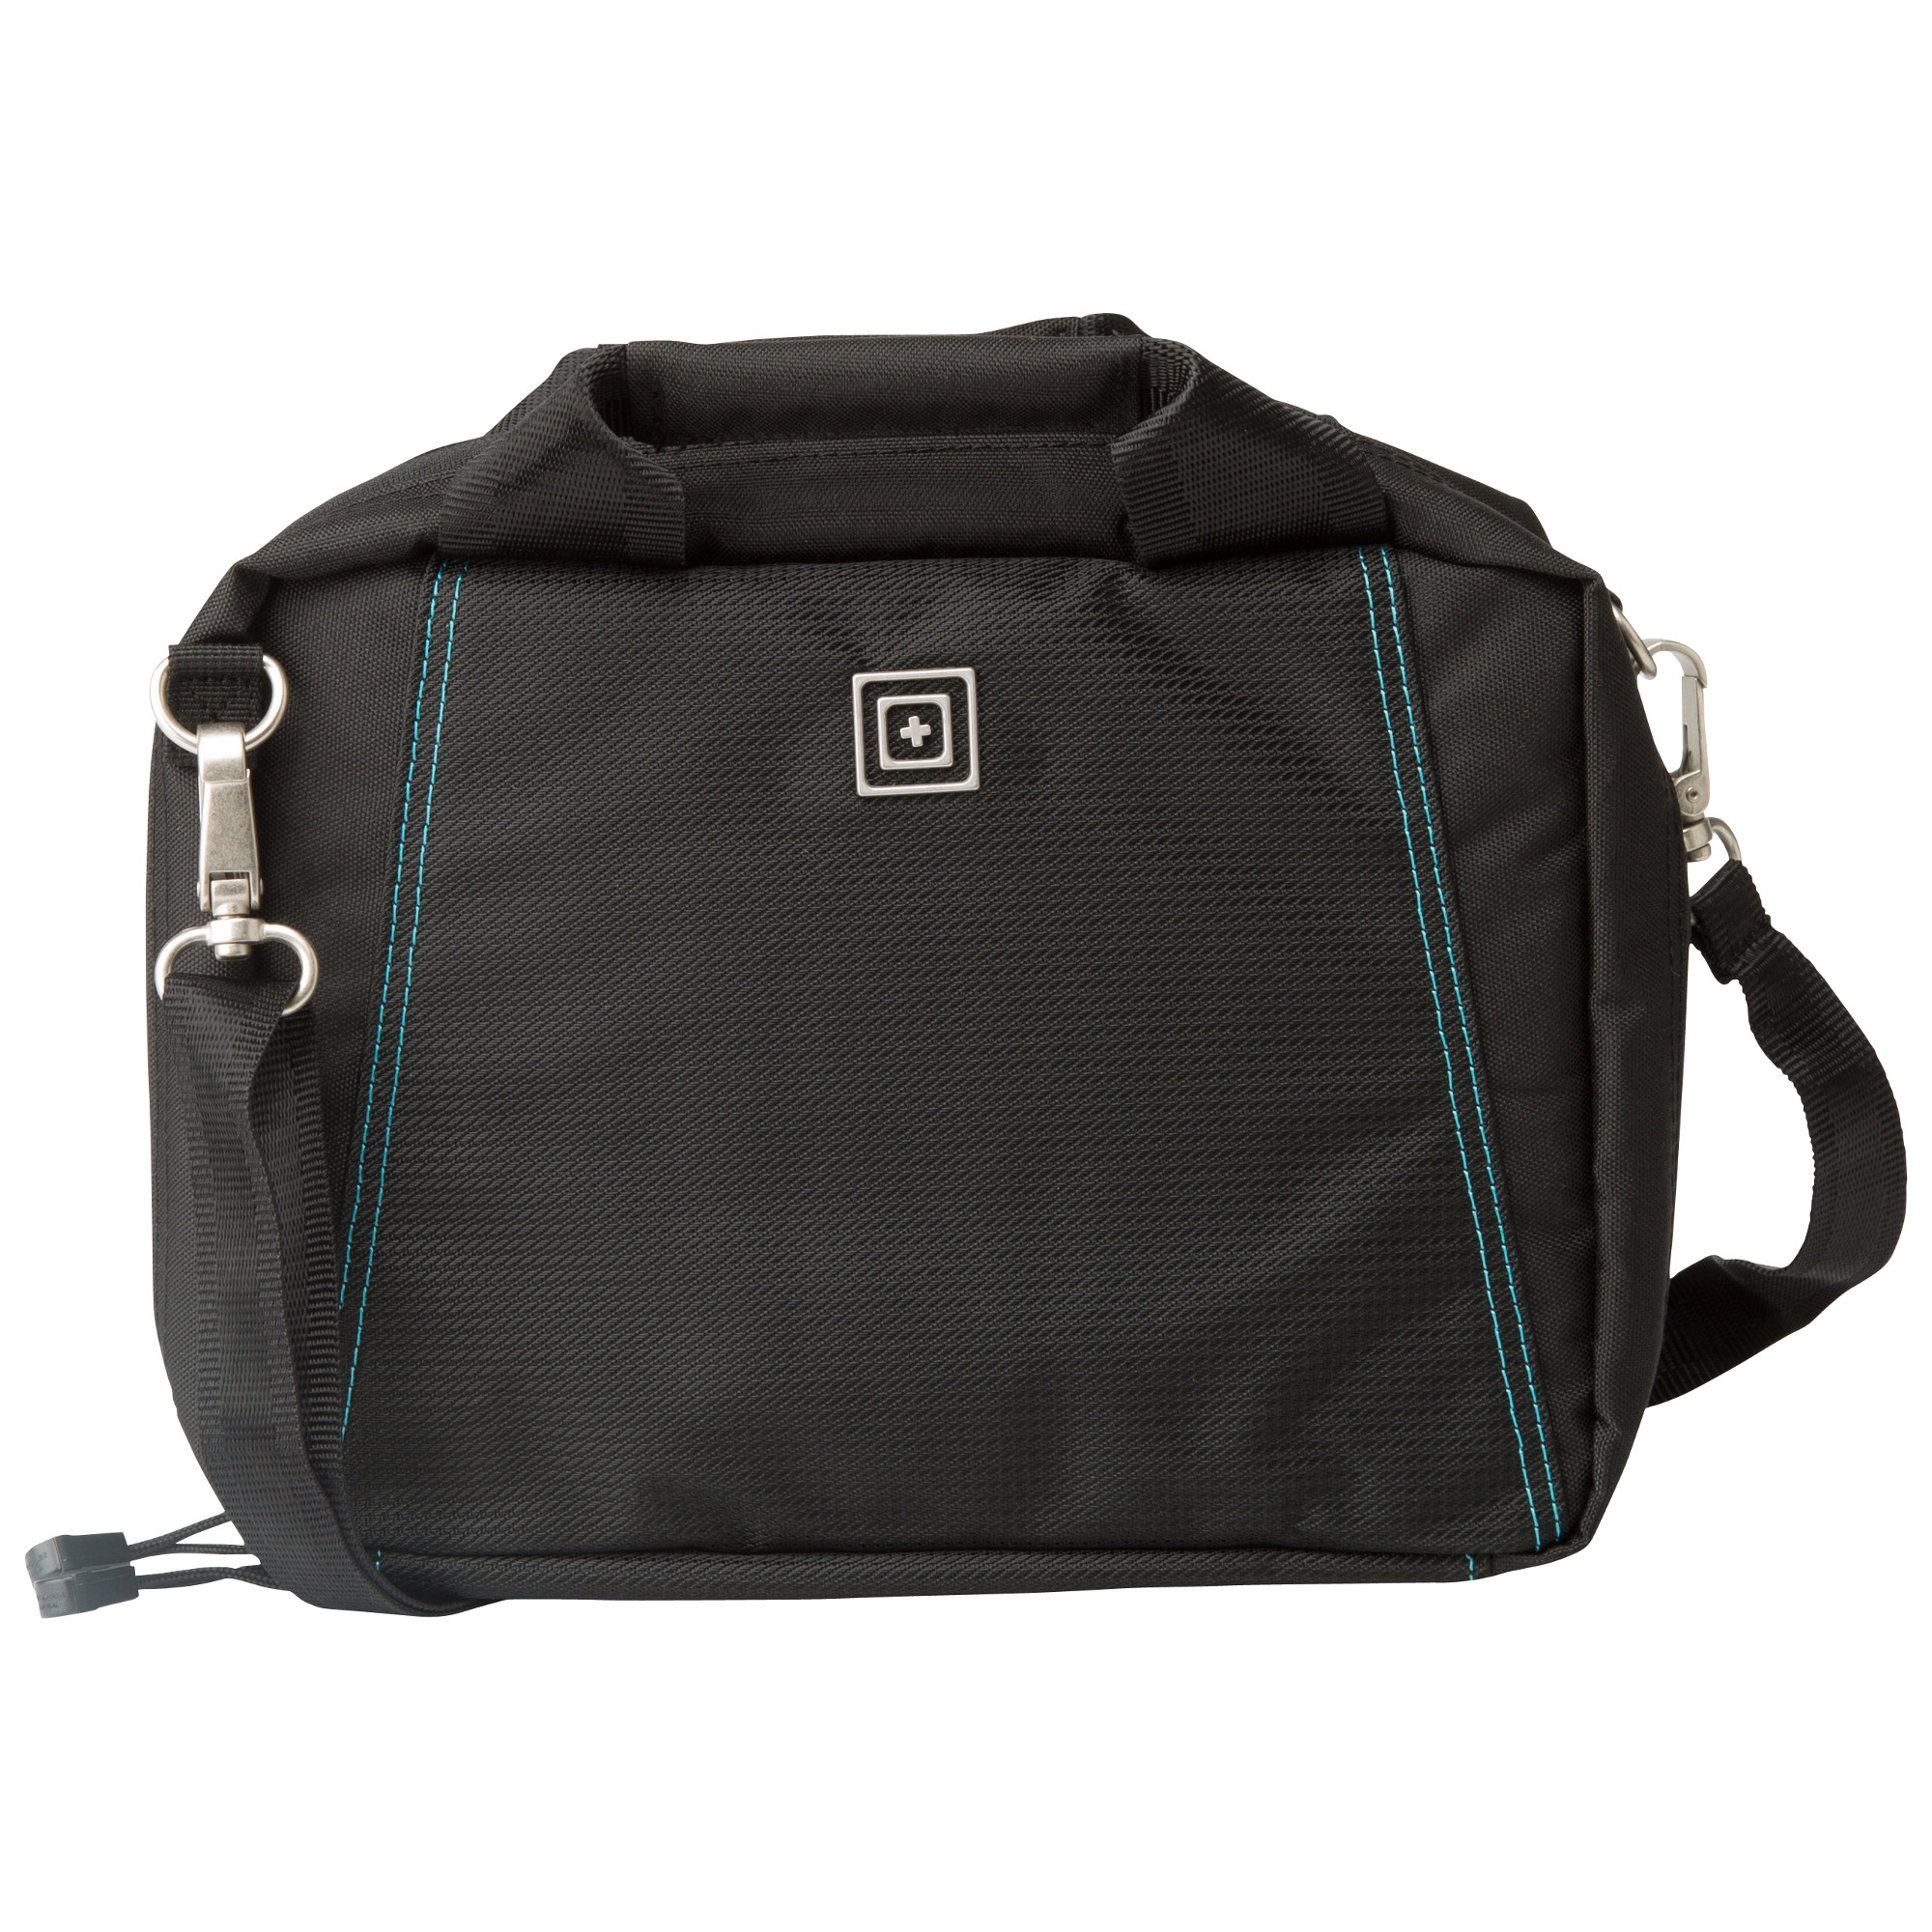 5.11 Tactical Women's Crossbody Range Purse (Black) (56309-019-1 SZ 888579046465 Accessories Bags) photo